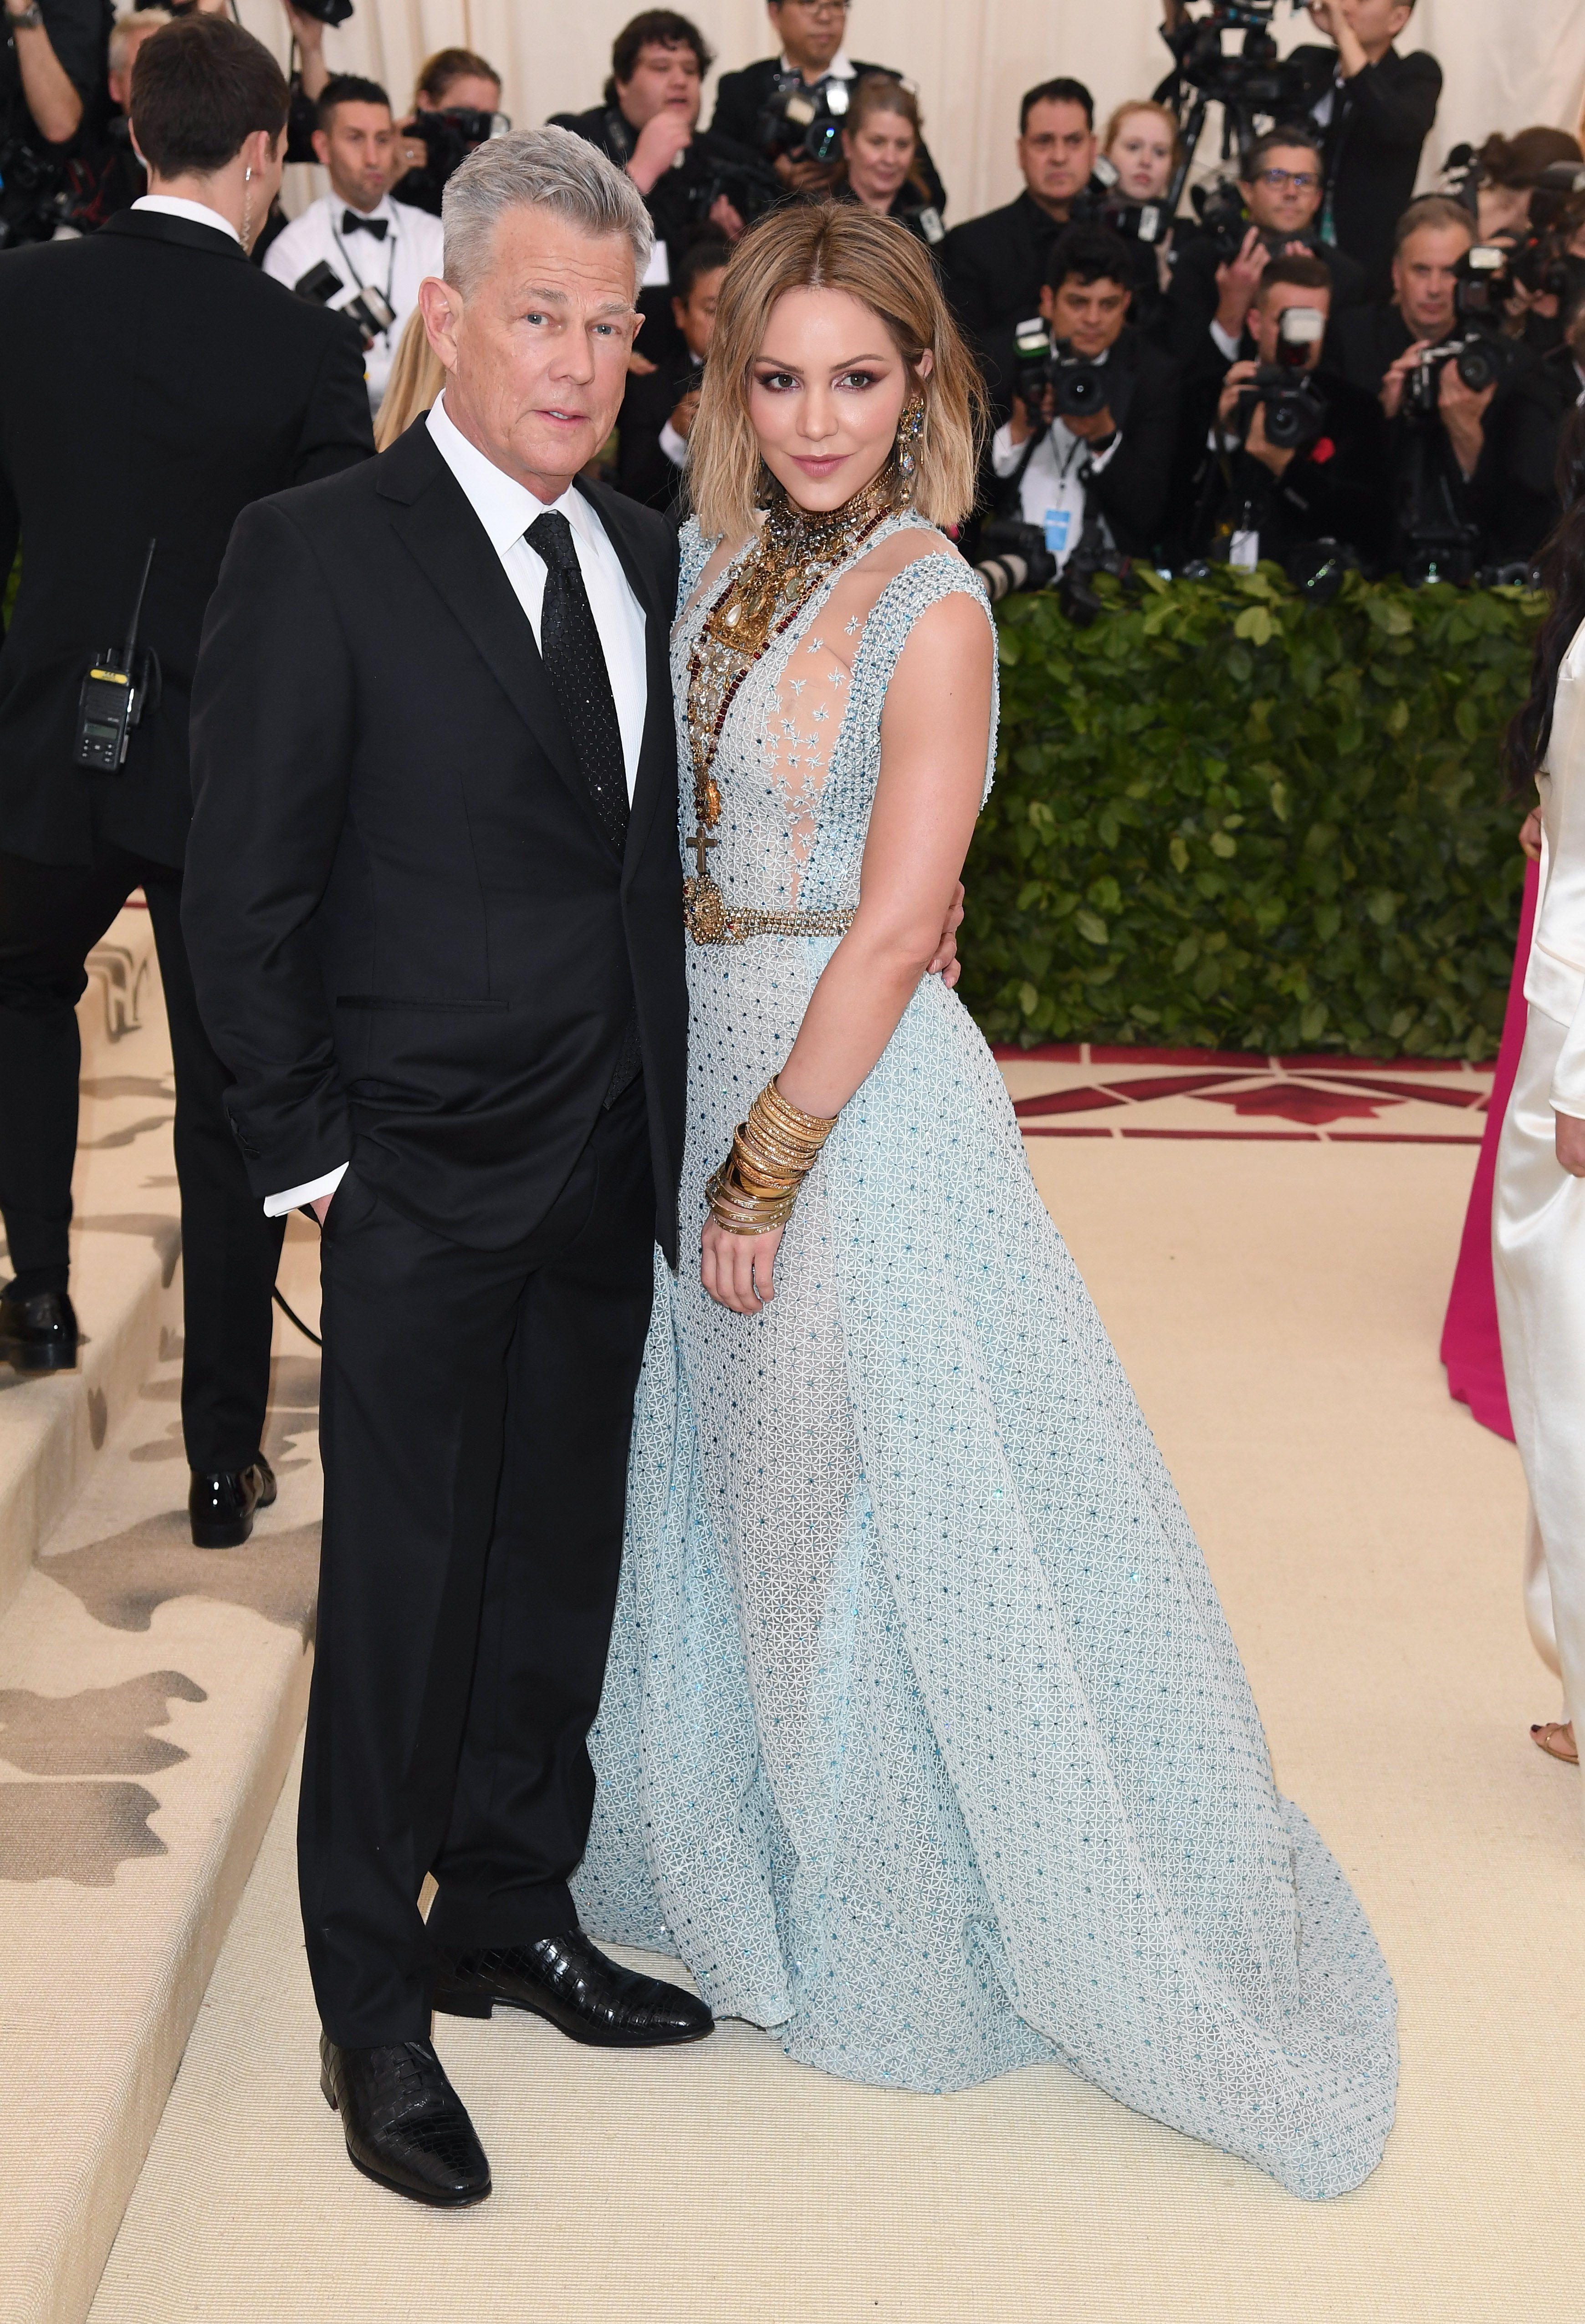 David Foster and Katharine McPhee attend the Heavenly Bodies: Fashion & The Catholic Imagination Costume Institute Gala | Source: Getty Images